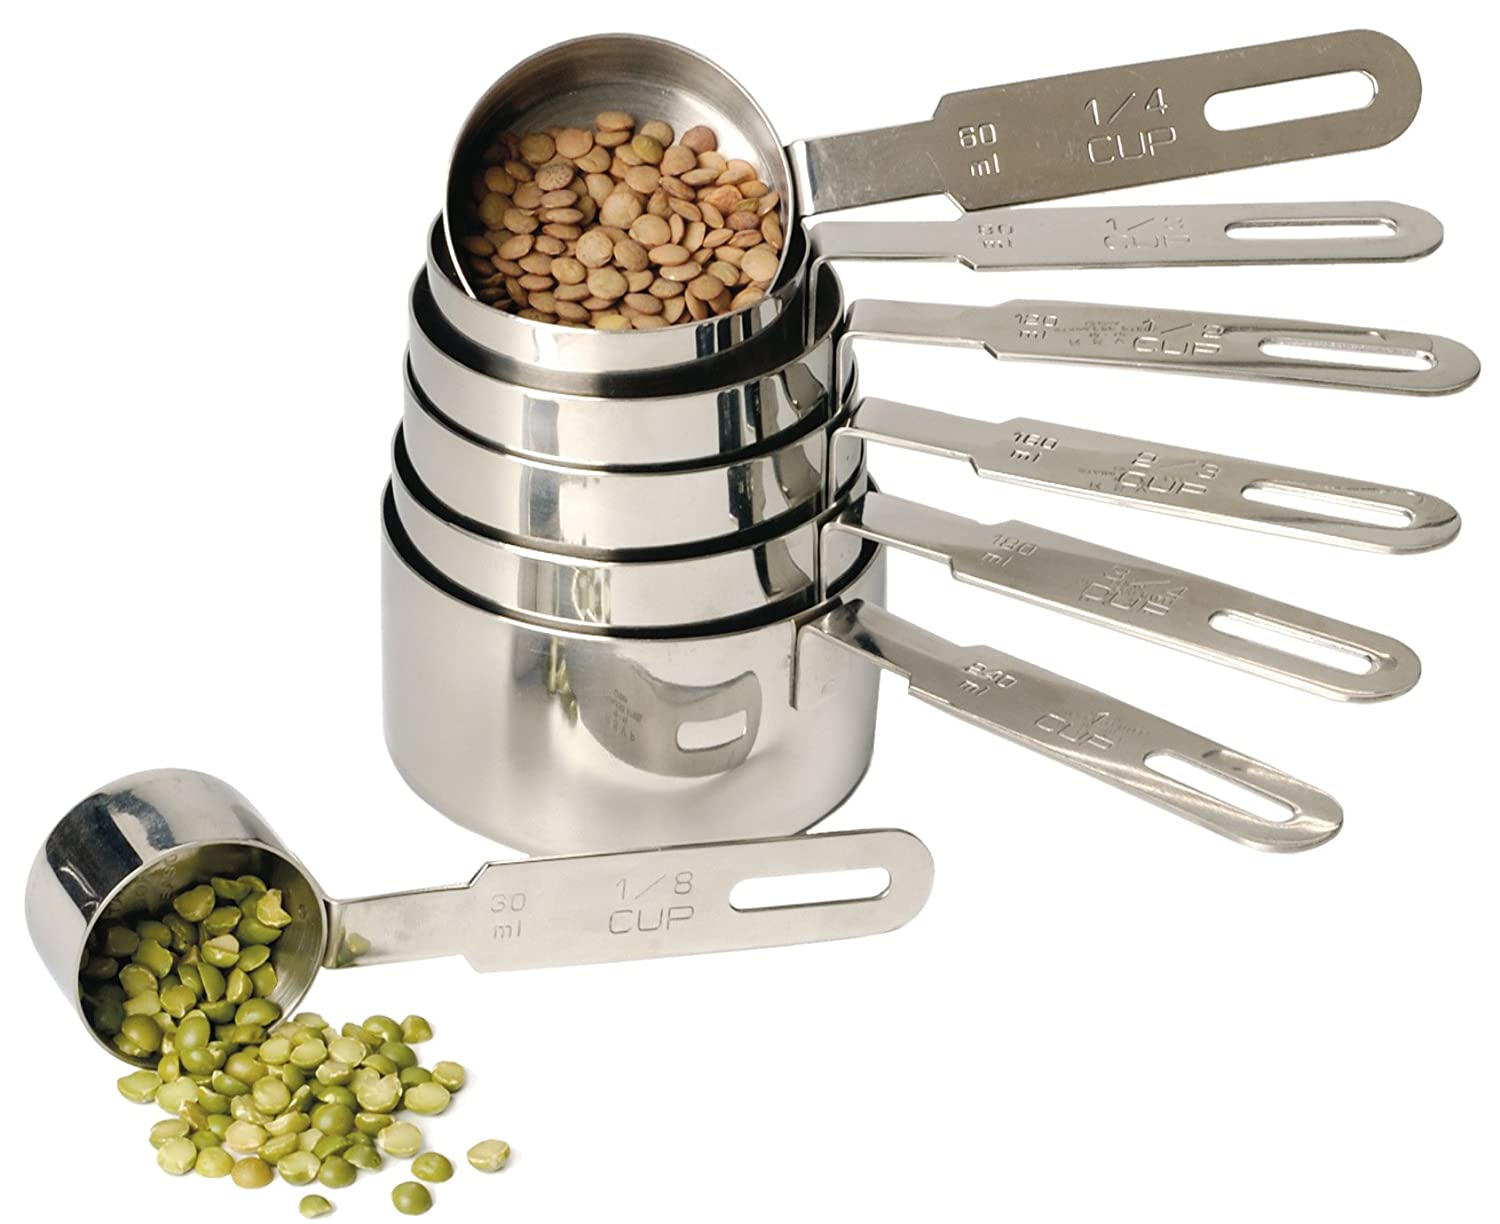 RSVP Endurance 18/8 Stainless Steel Measuring Cups, 7 Count (DMC-10) RSVP International